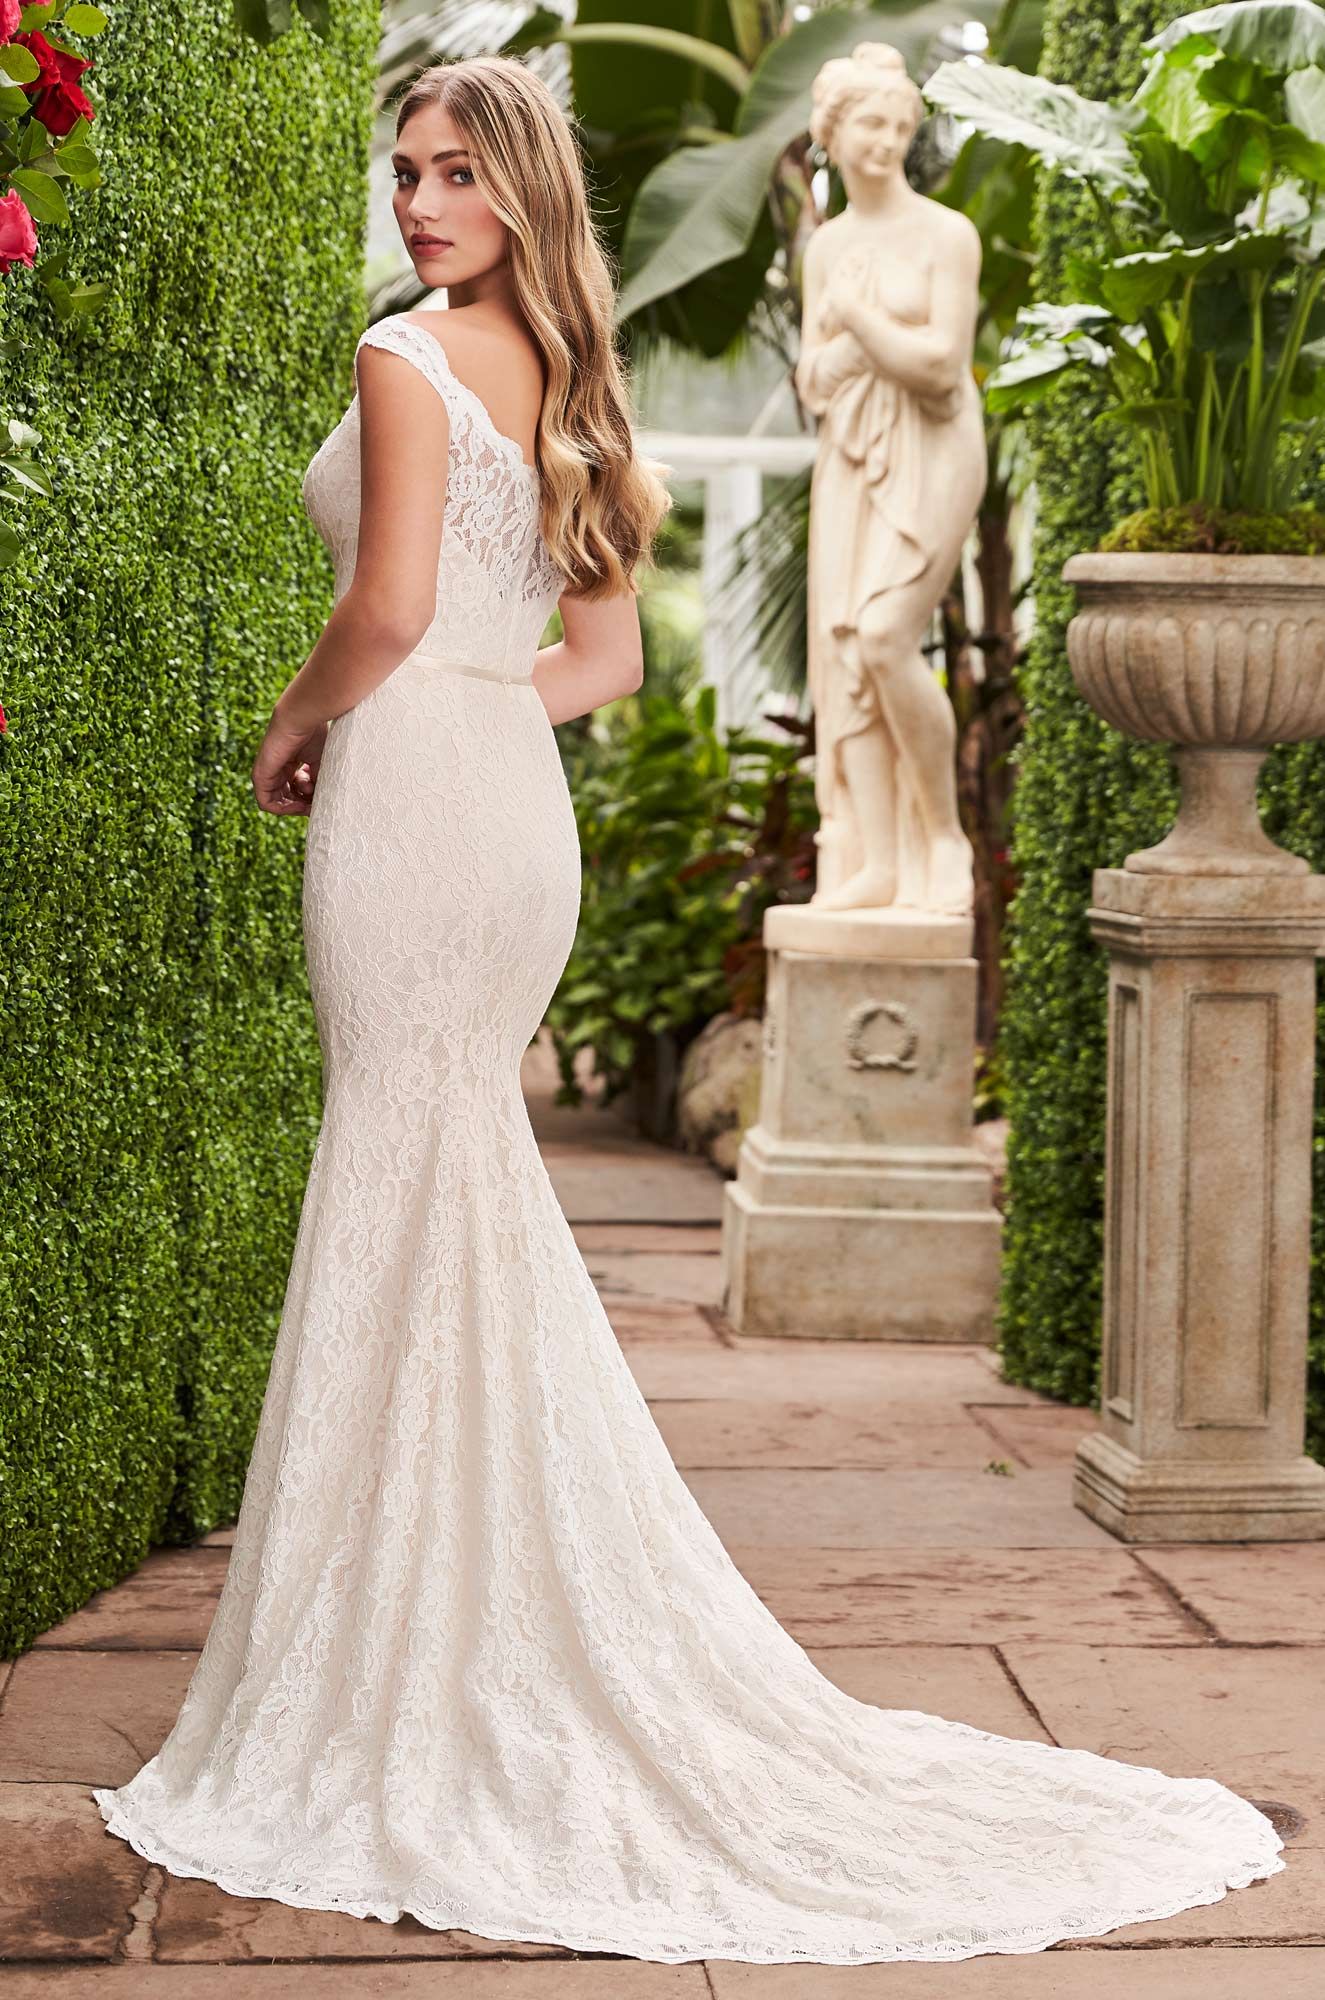 Sheer Lace Back Wedding Dress - Style #2271 | Mikaella Bridal